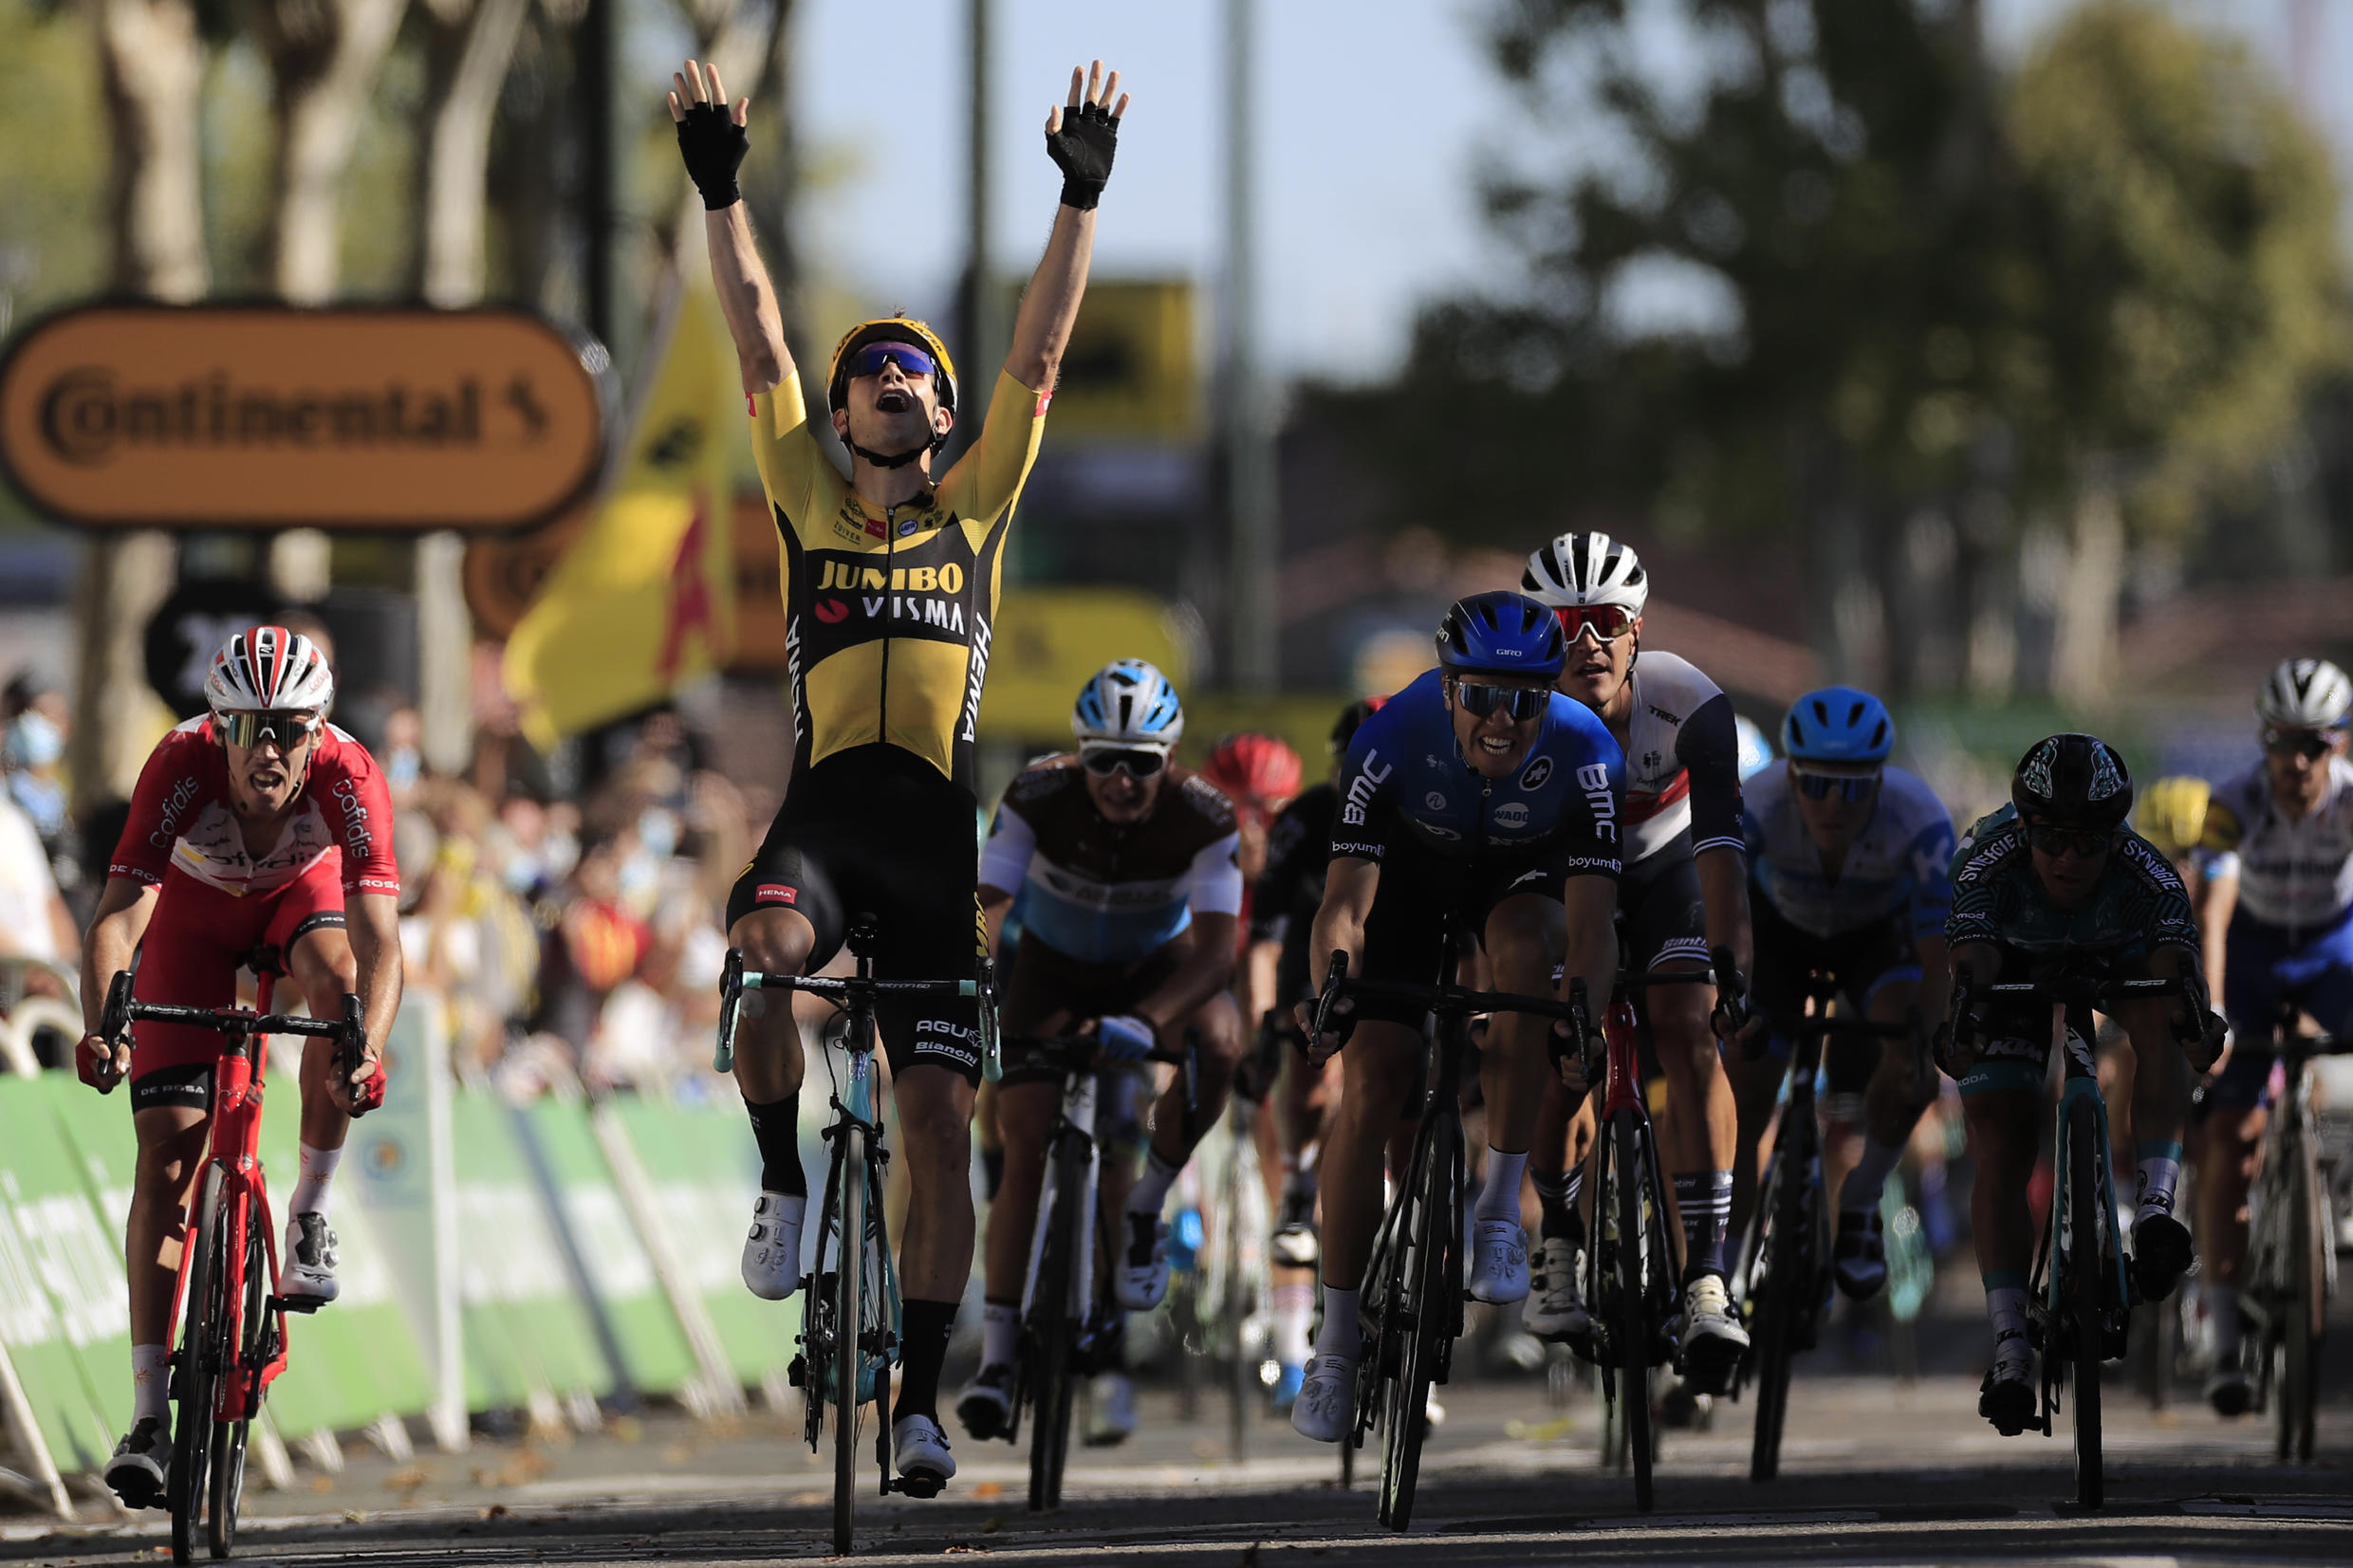 Wout van Aert edged the sprint to claim the seventh stage of the Tour de France in Lavaur in southern France.